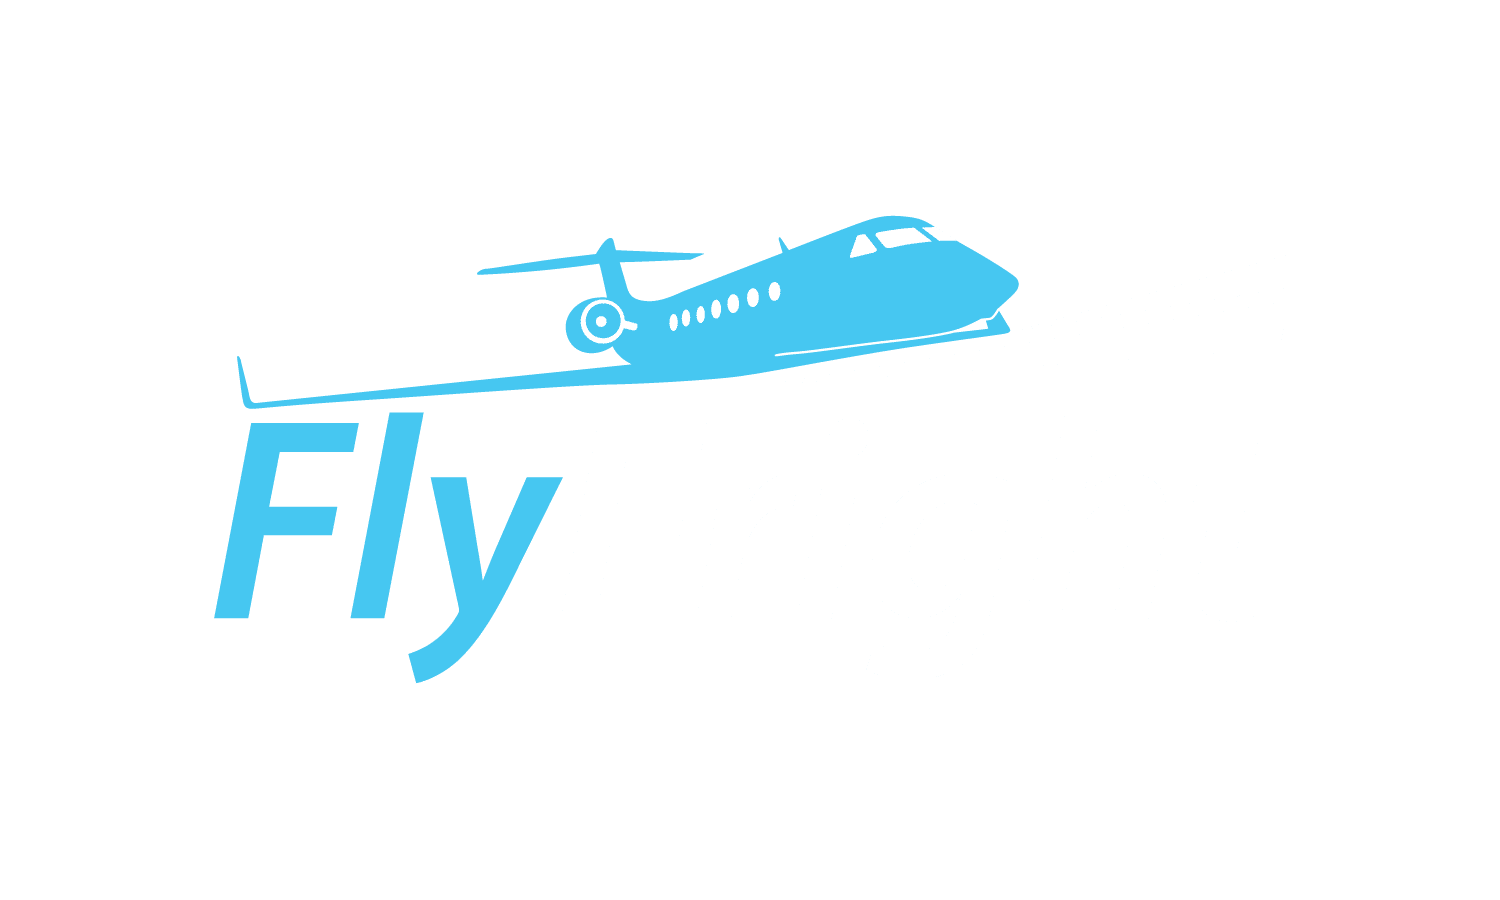 FlyFright